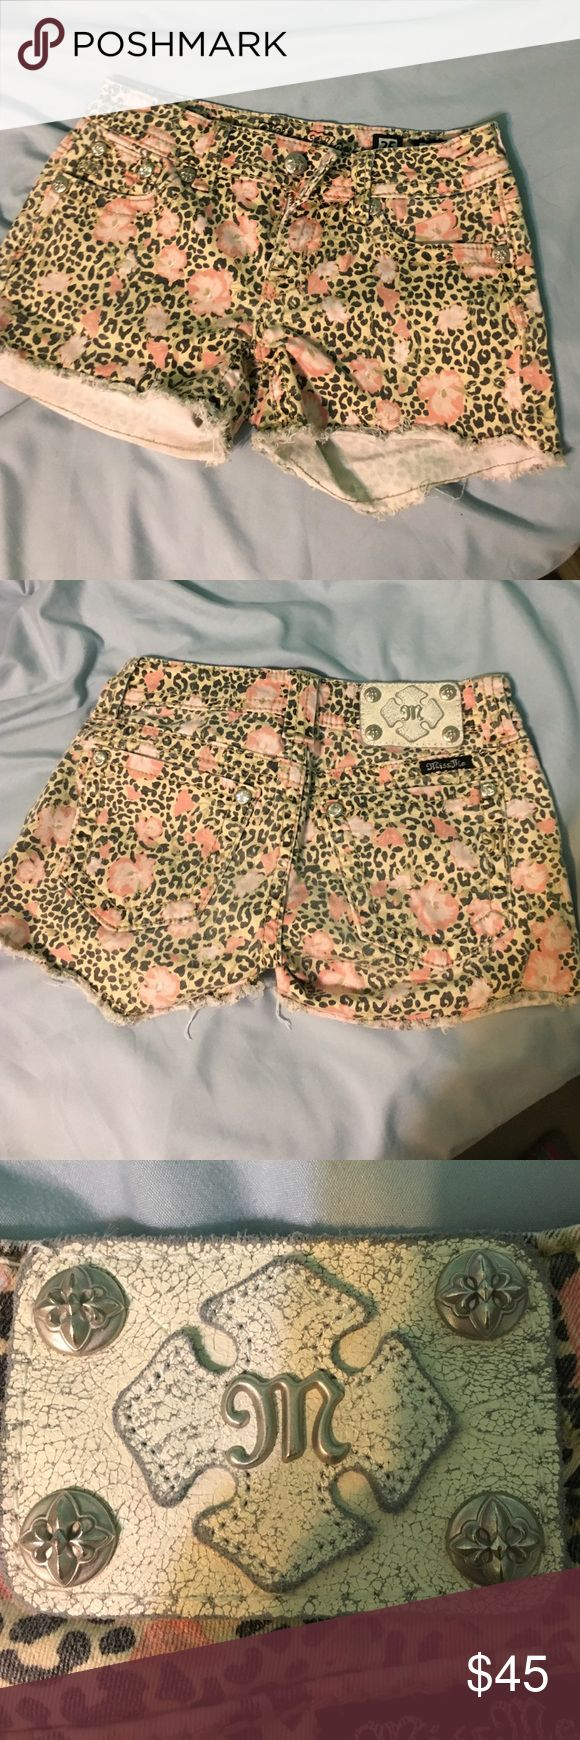 Size 25 Miss Me flower cheetah shorts Size 25 Miss Me shorts. Cute pattern for summer! Miss Me Shorts Jean Shorts